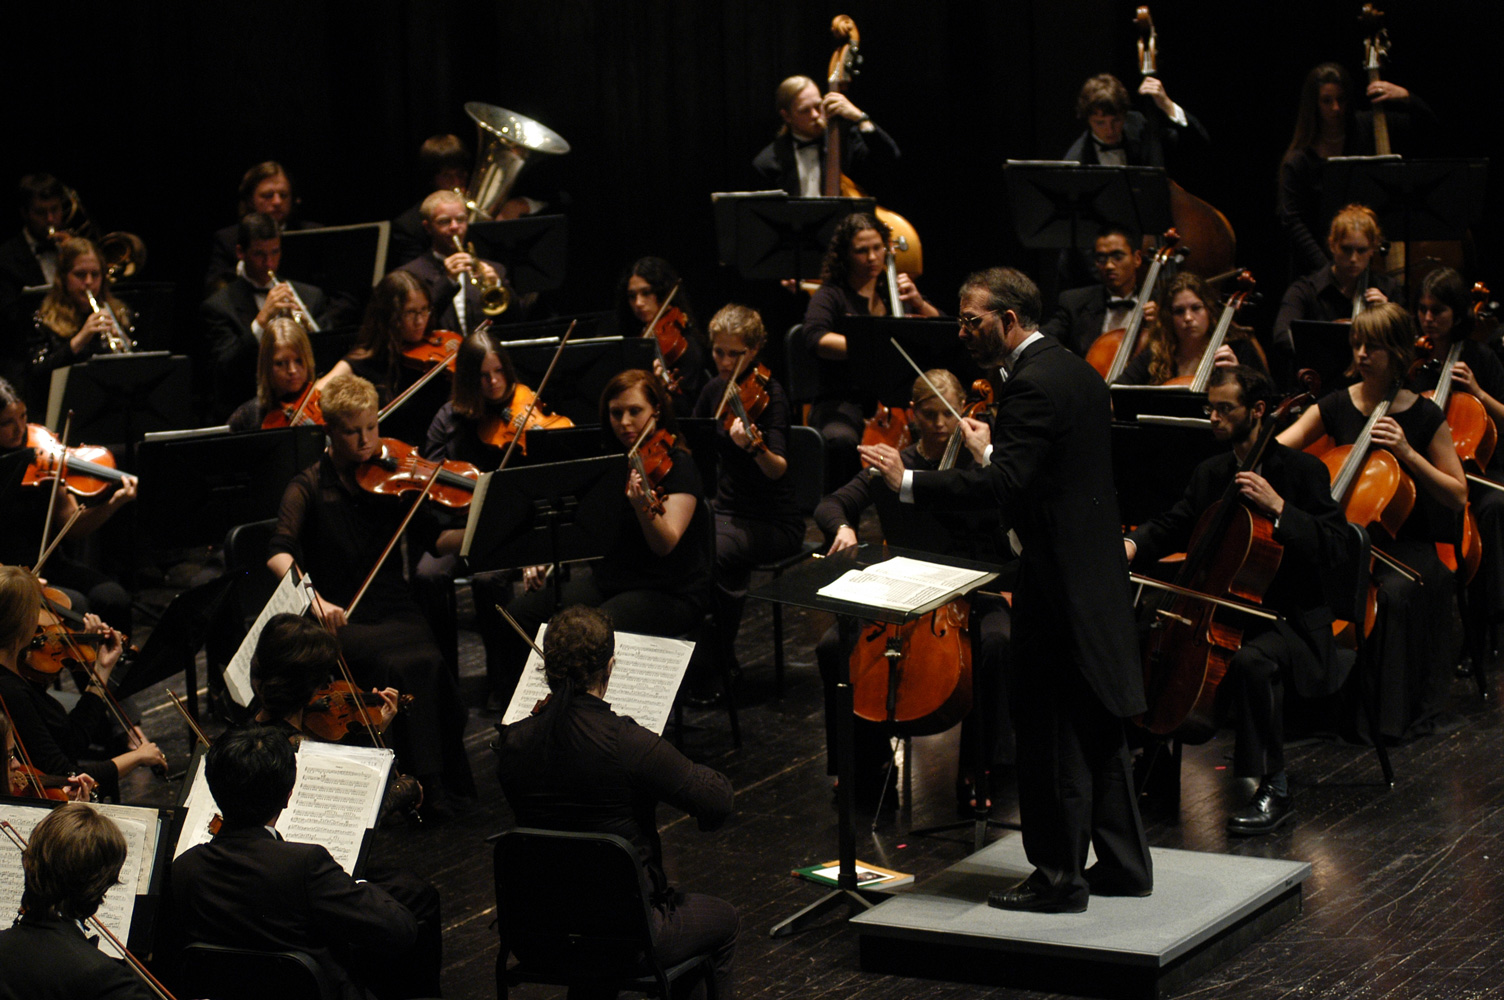 Orchestra concert to benefit Joplin high school